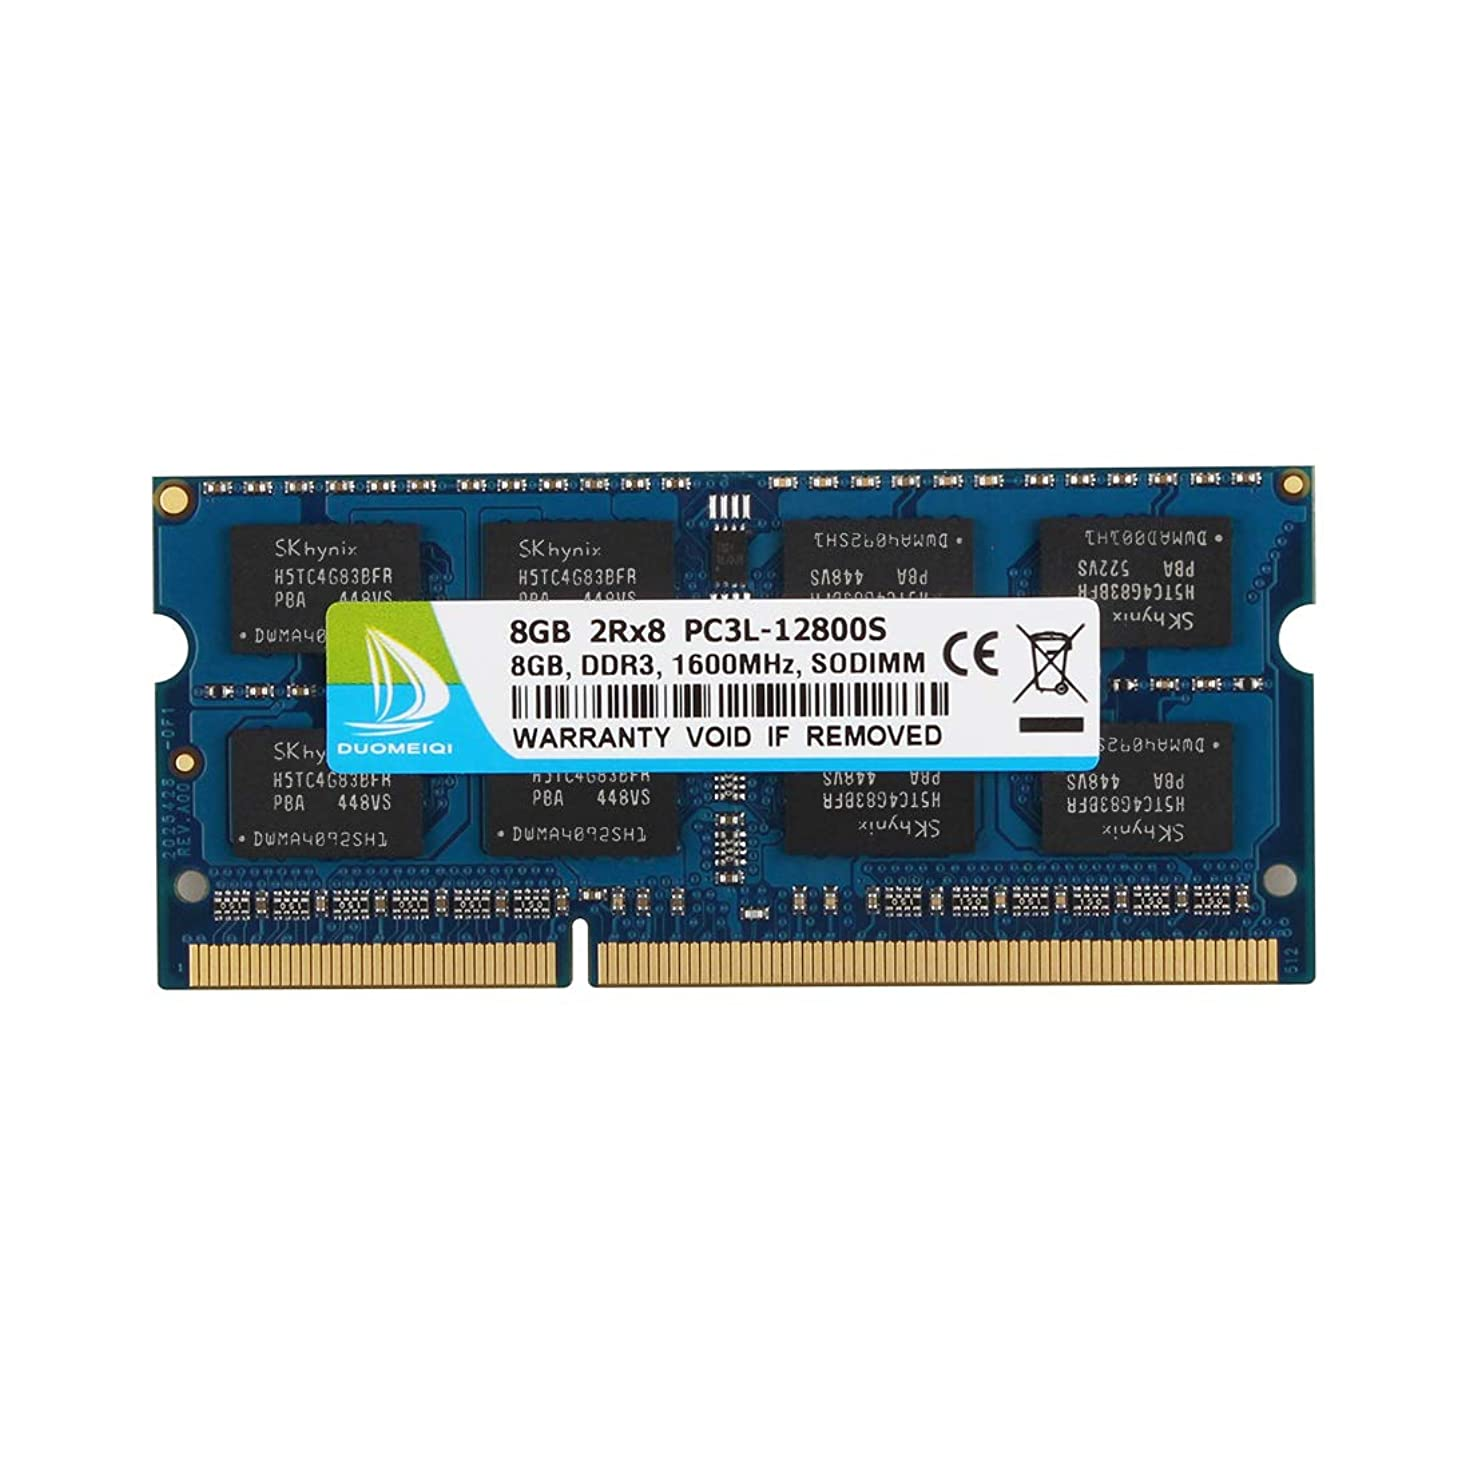 DUOMEIQI 8GB DDR3L 1600MHz SODIMM PC3L-12800 PC3L-12800S 2Rx8 1.35V / 1.5V CL11 204 Pin Non ECC Unbuffered Laptop Notebook Computer Memory Ram Module for Mac, Intel and AMD System